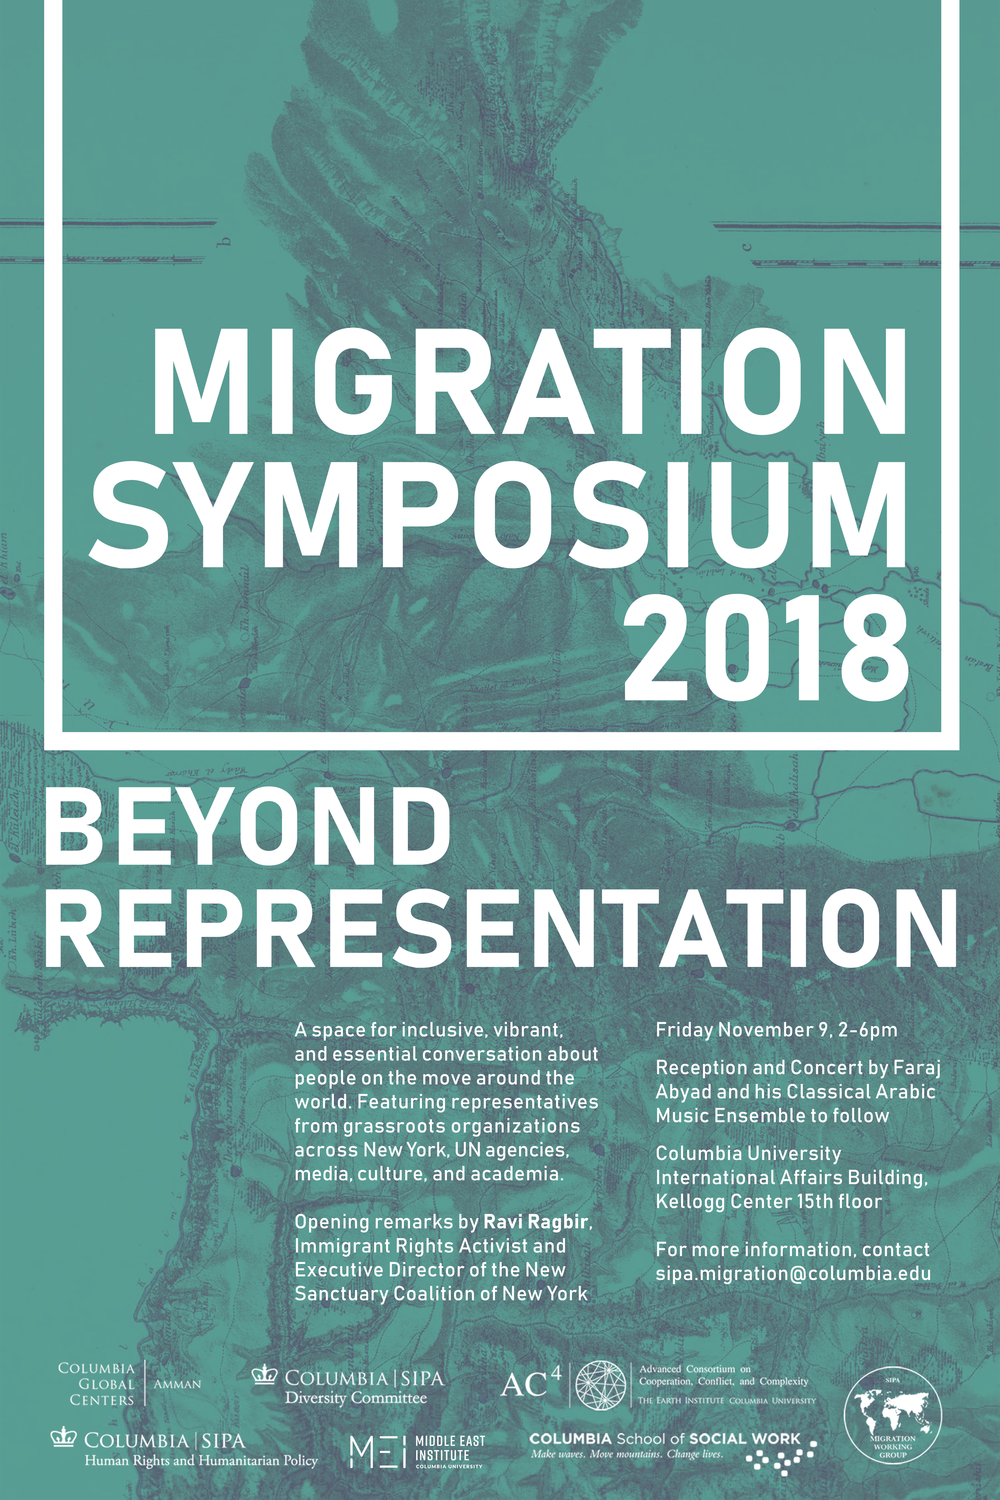 MIGRATION SYMPOSIUM LARGE.png